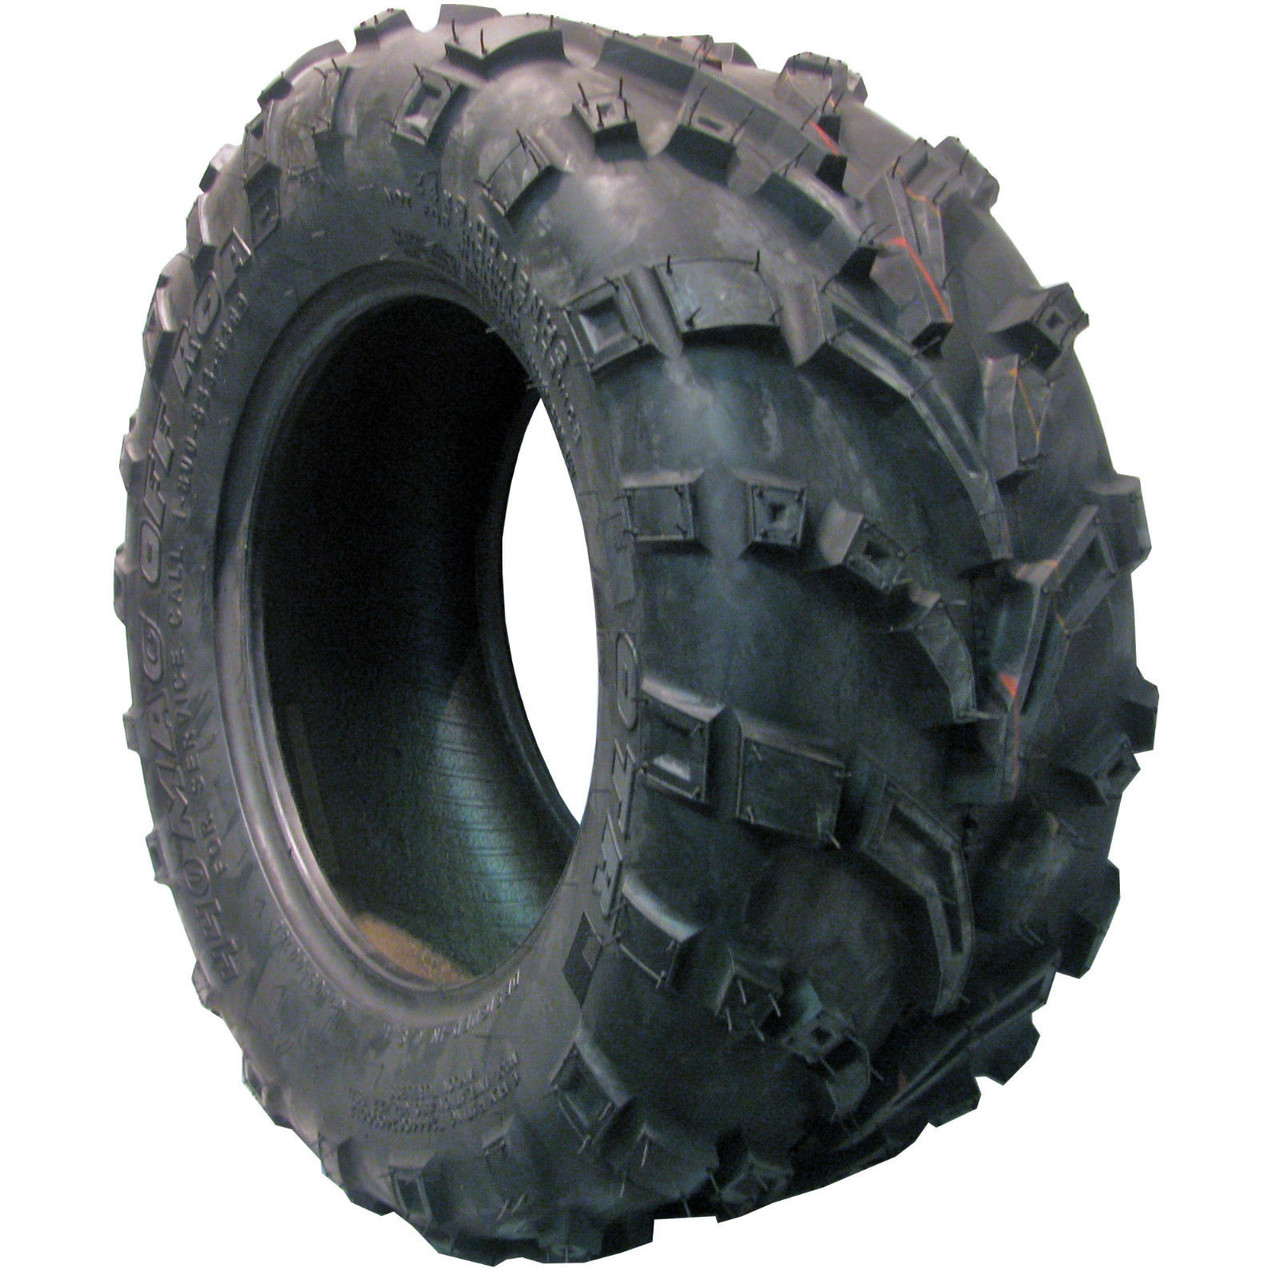 New Tire 24 9.00 12 OTR 440 Mag 6 Ply ATV 24x9.00-12 24x9-12